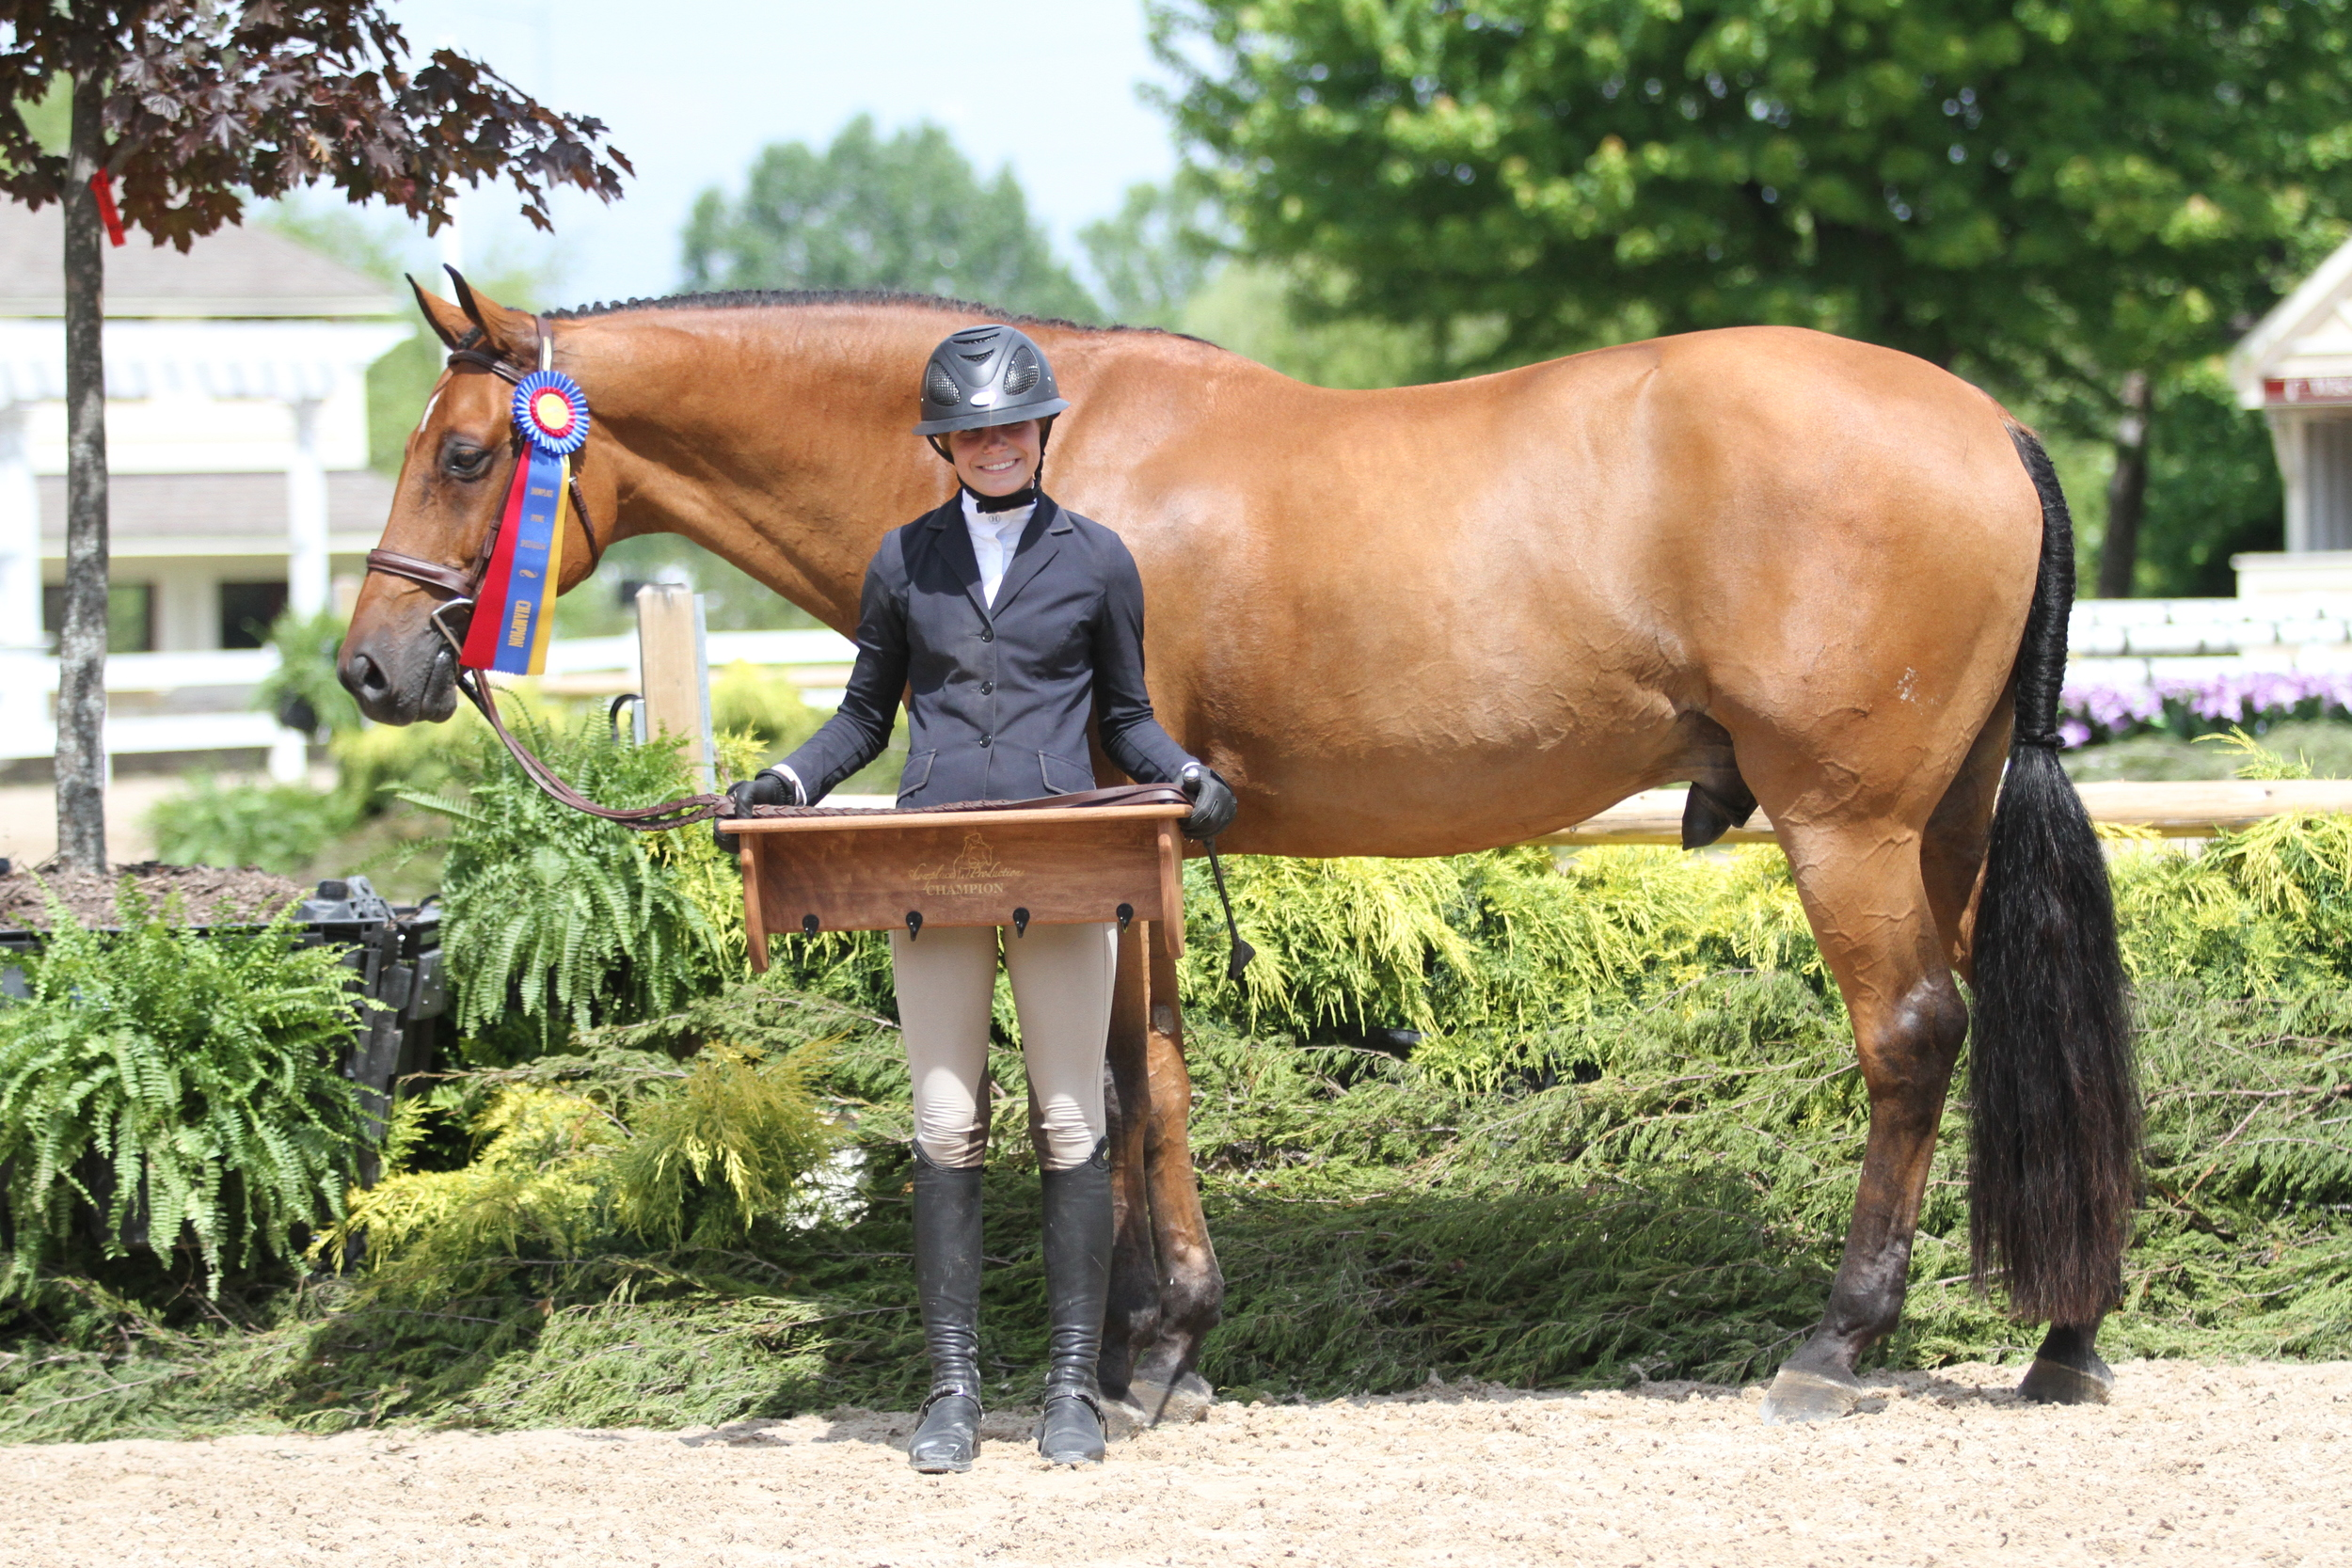 Large Junior Hunter Champion    Coachella, owned and ridden by Sloan Hopson, took top honors as the large junior hunter champion.